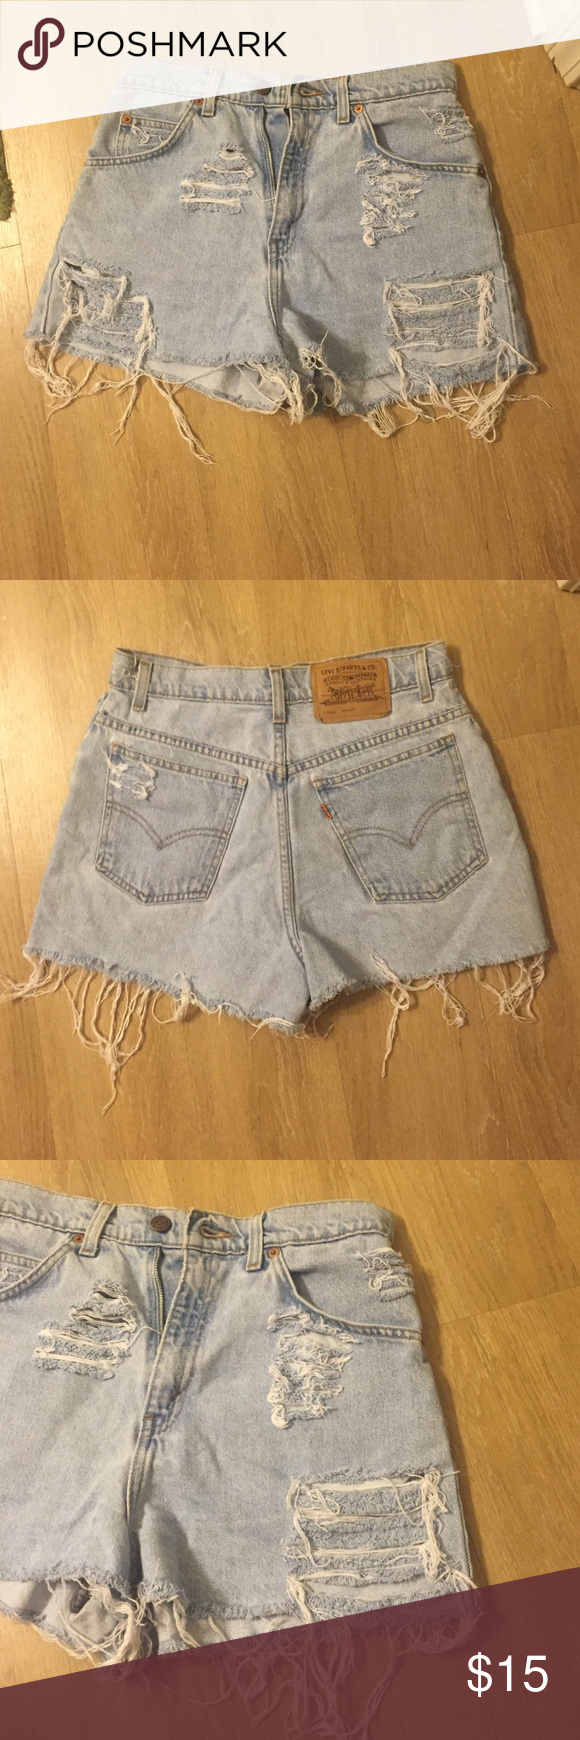 Vintage Levi high-waisted shorts In love with these shorts but they're just too baggy on me :( they're a 27 waist, 13 inch rise I believe. Willing to re-measure if you'd like. They're light wash with lots of cute tatters. My loss is your gain! Levi's Shorts Jean Shorts